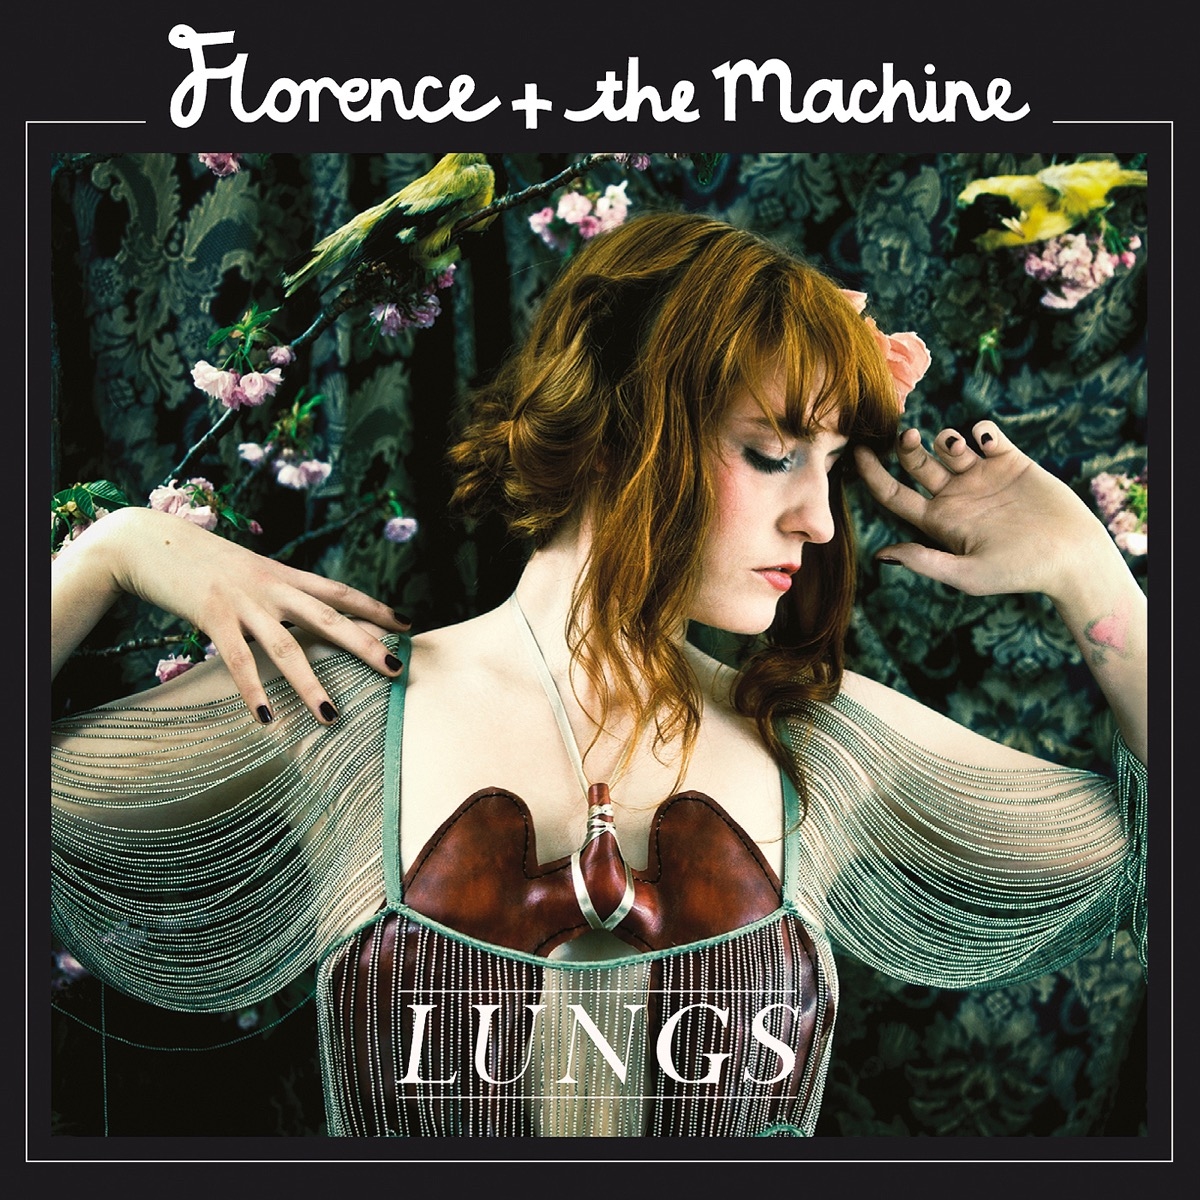 florence and the machine album cover art, best breakup songs